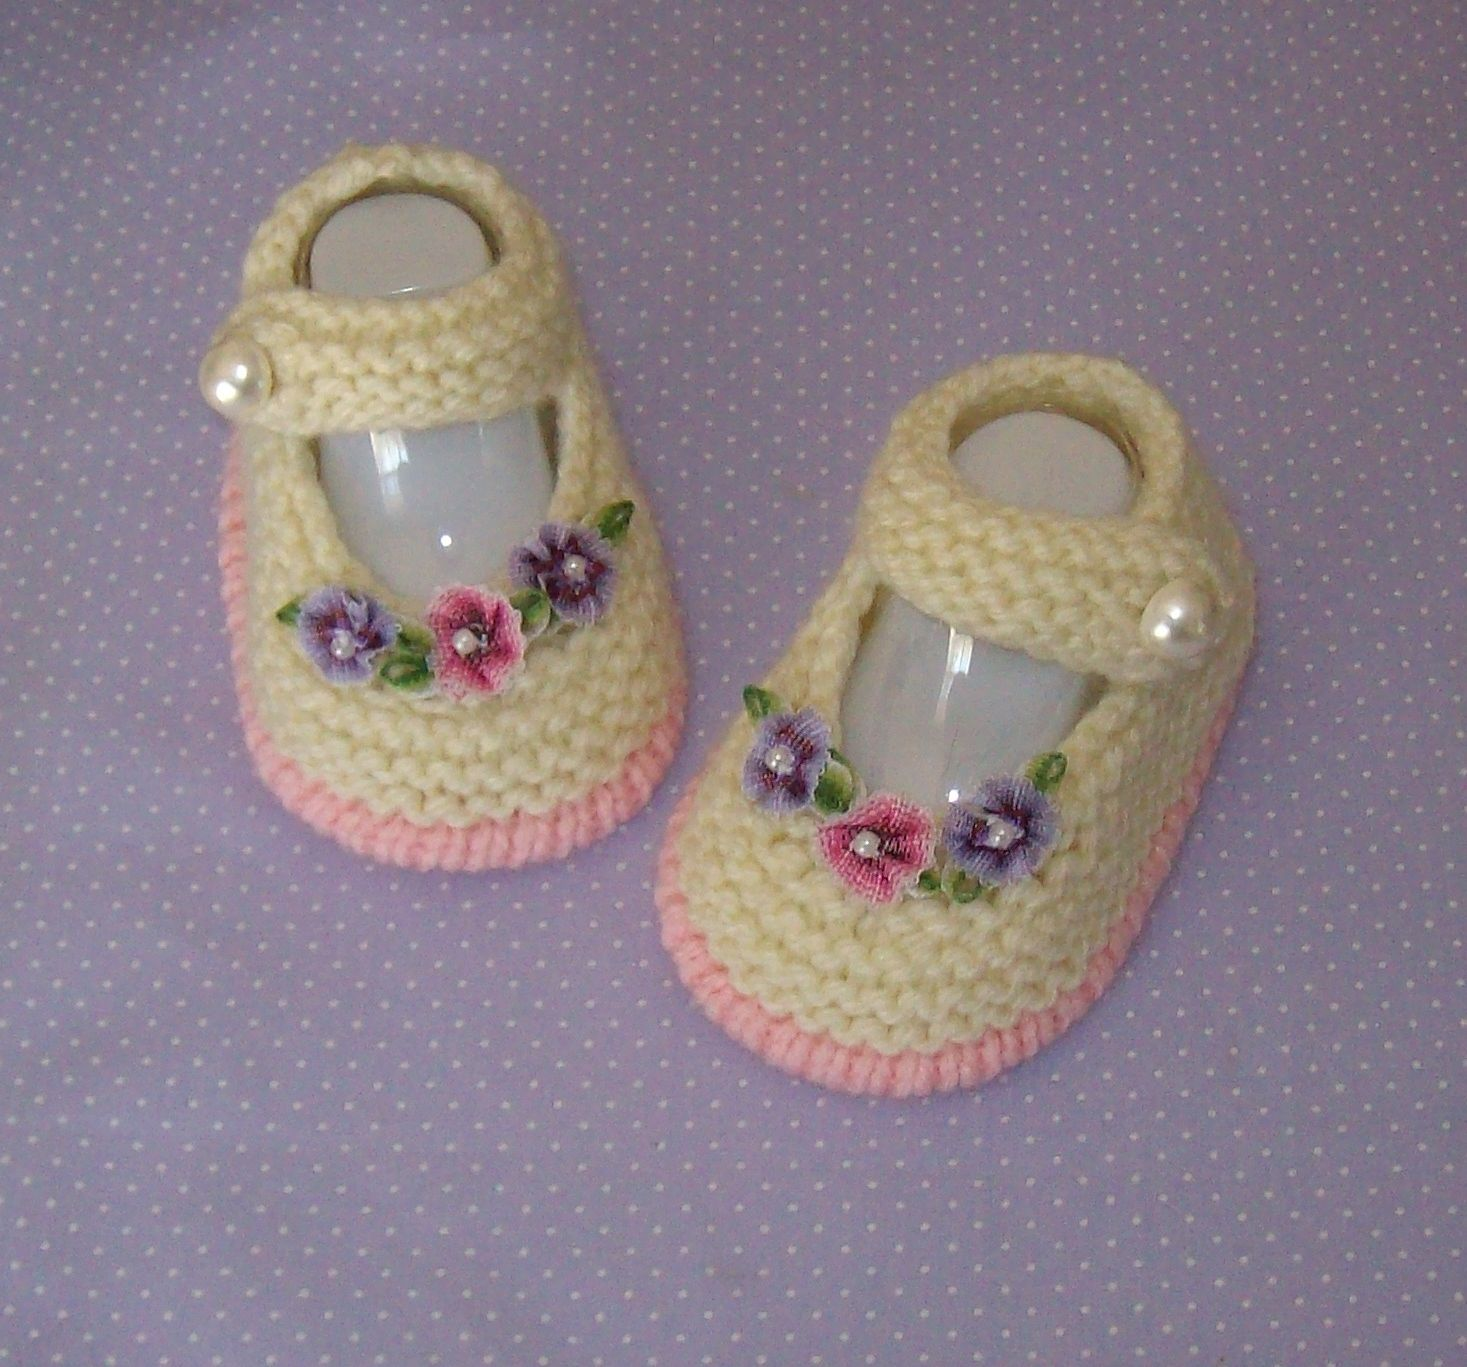 Hand knitted designer baby booties MARY JANE BOOTIES Available to